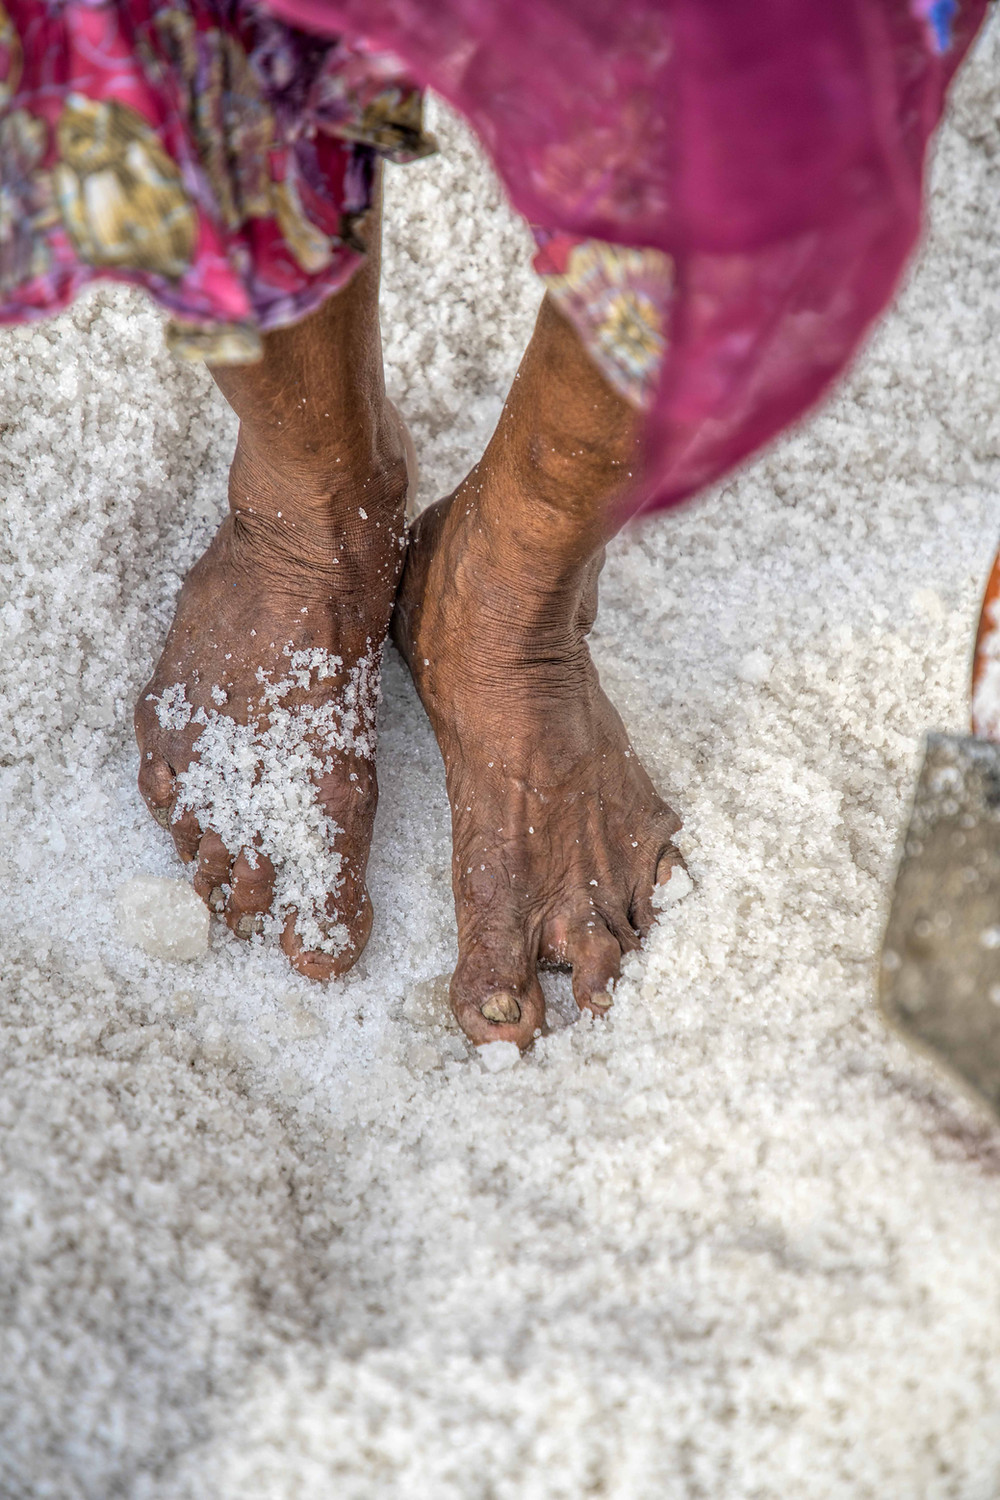 Salt pan worker feet has deformation